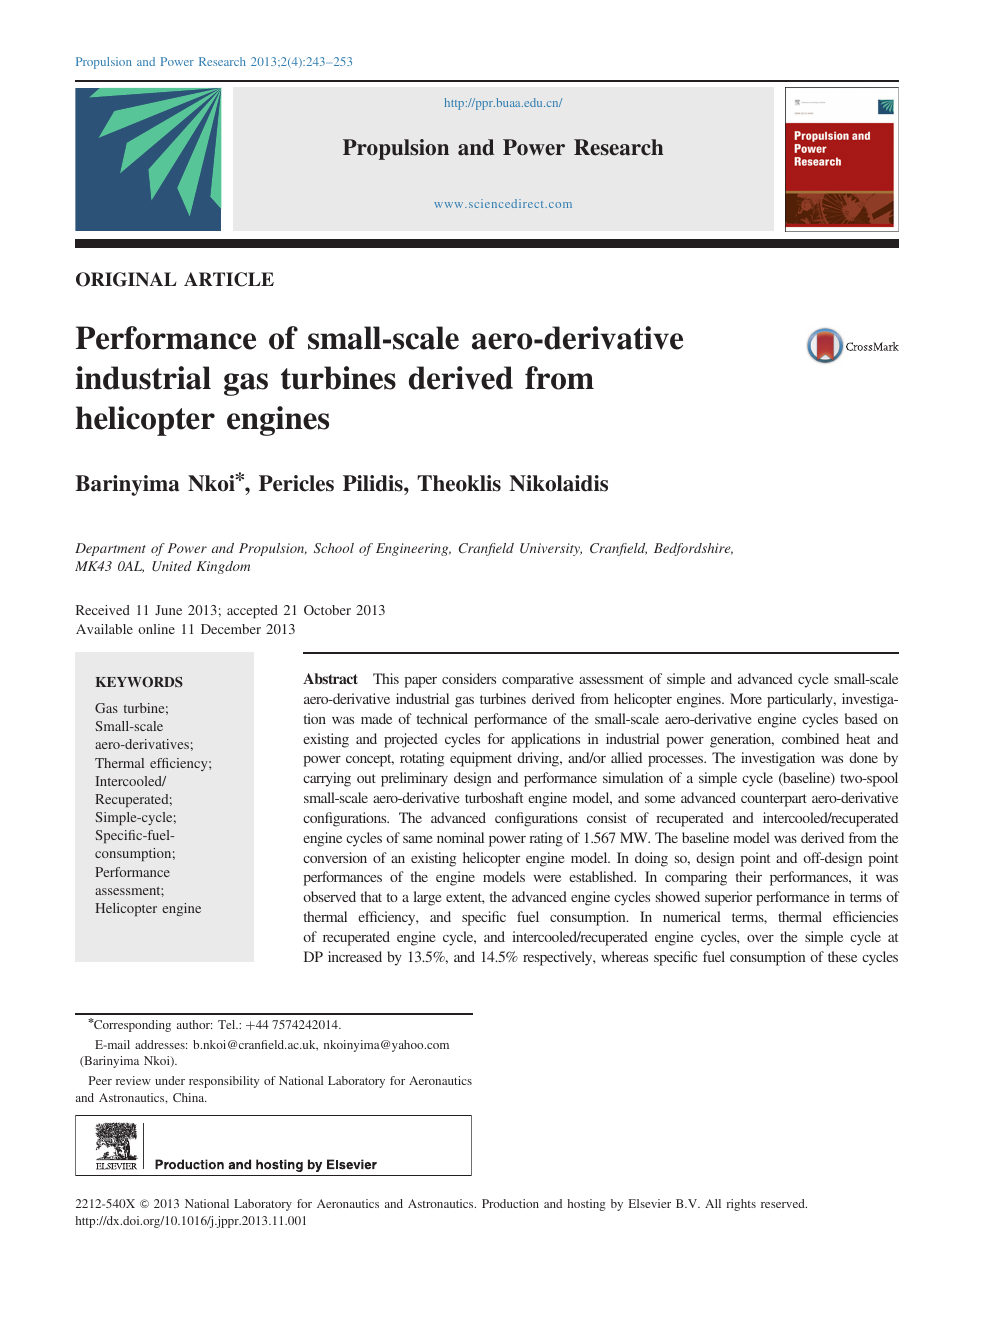 Performance of small-scale aero-derivative industrial gas